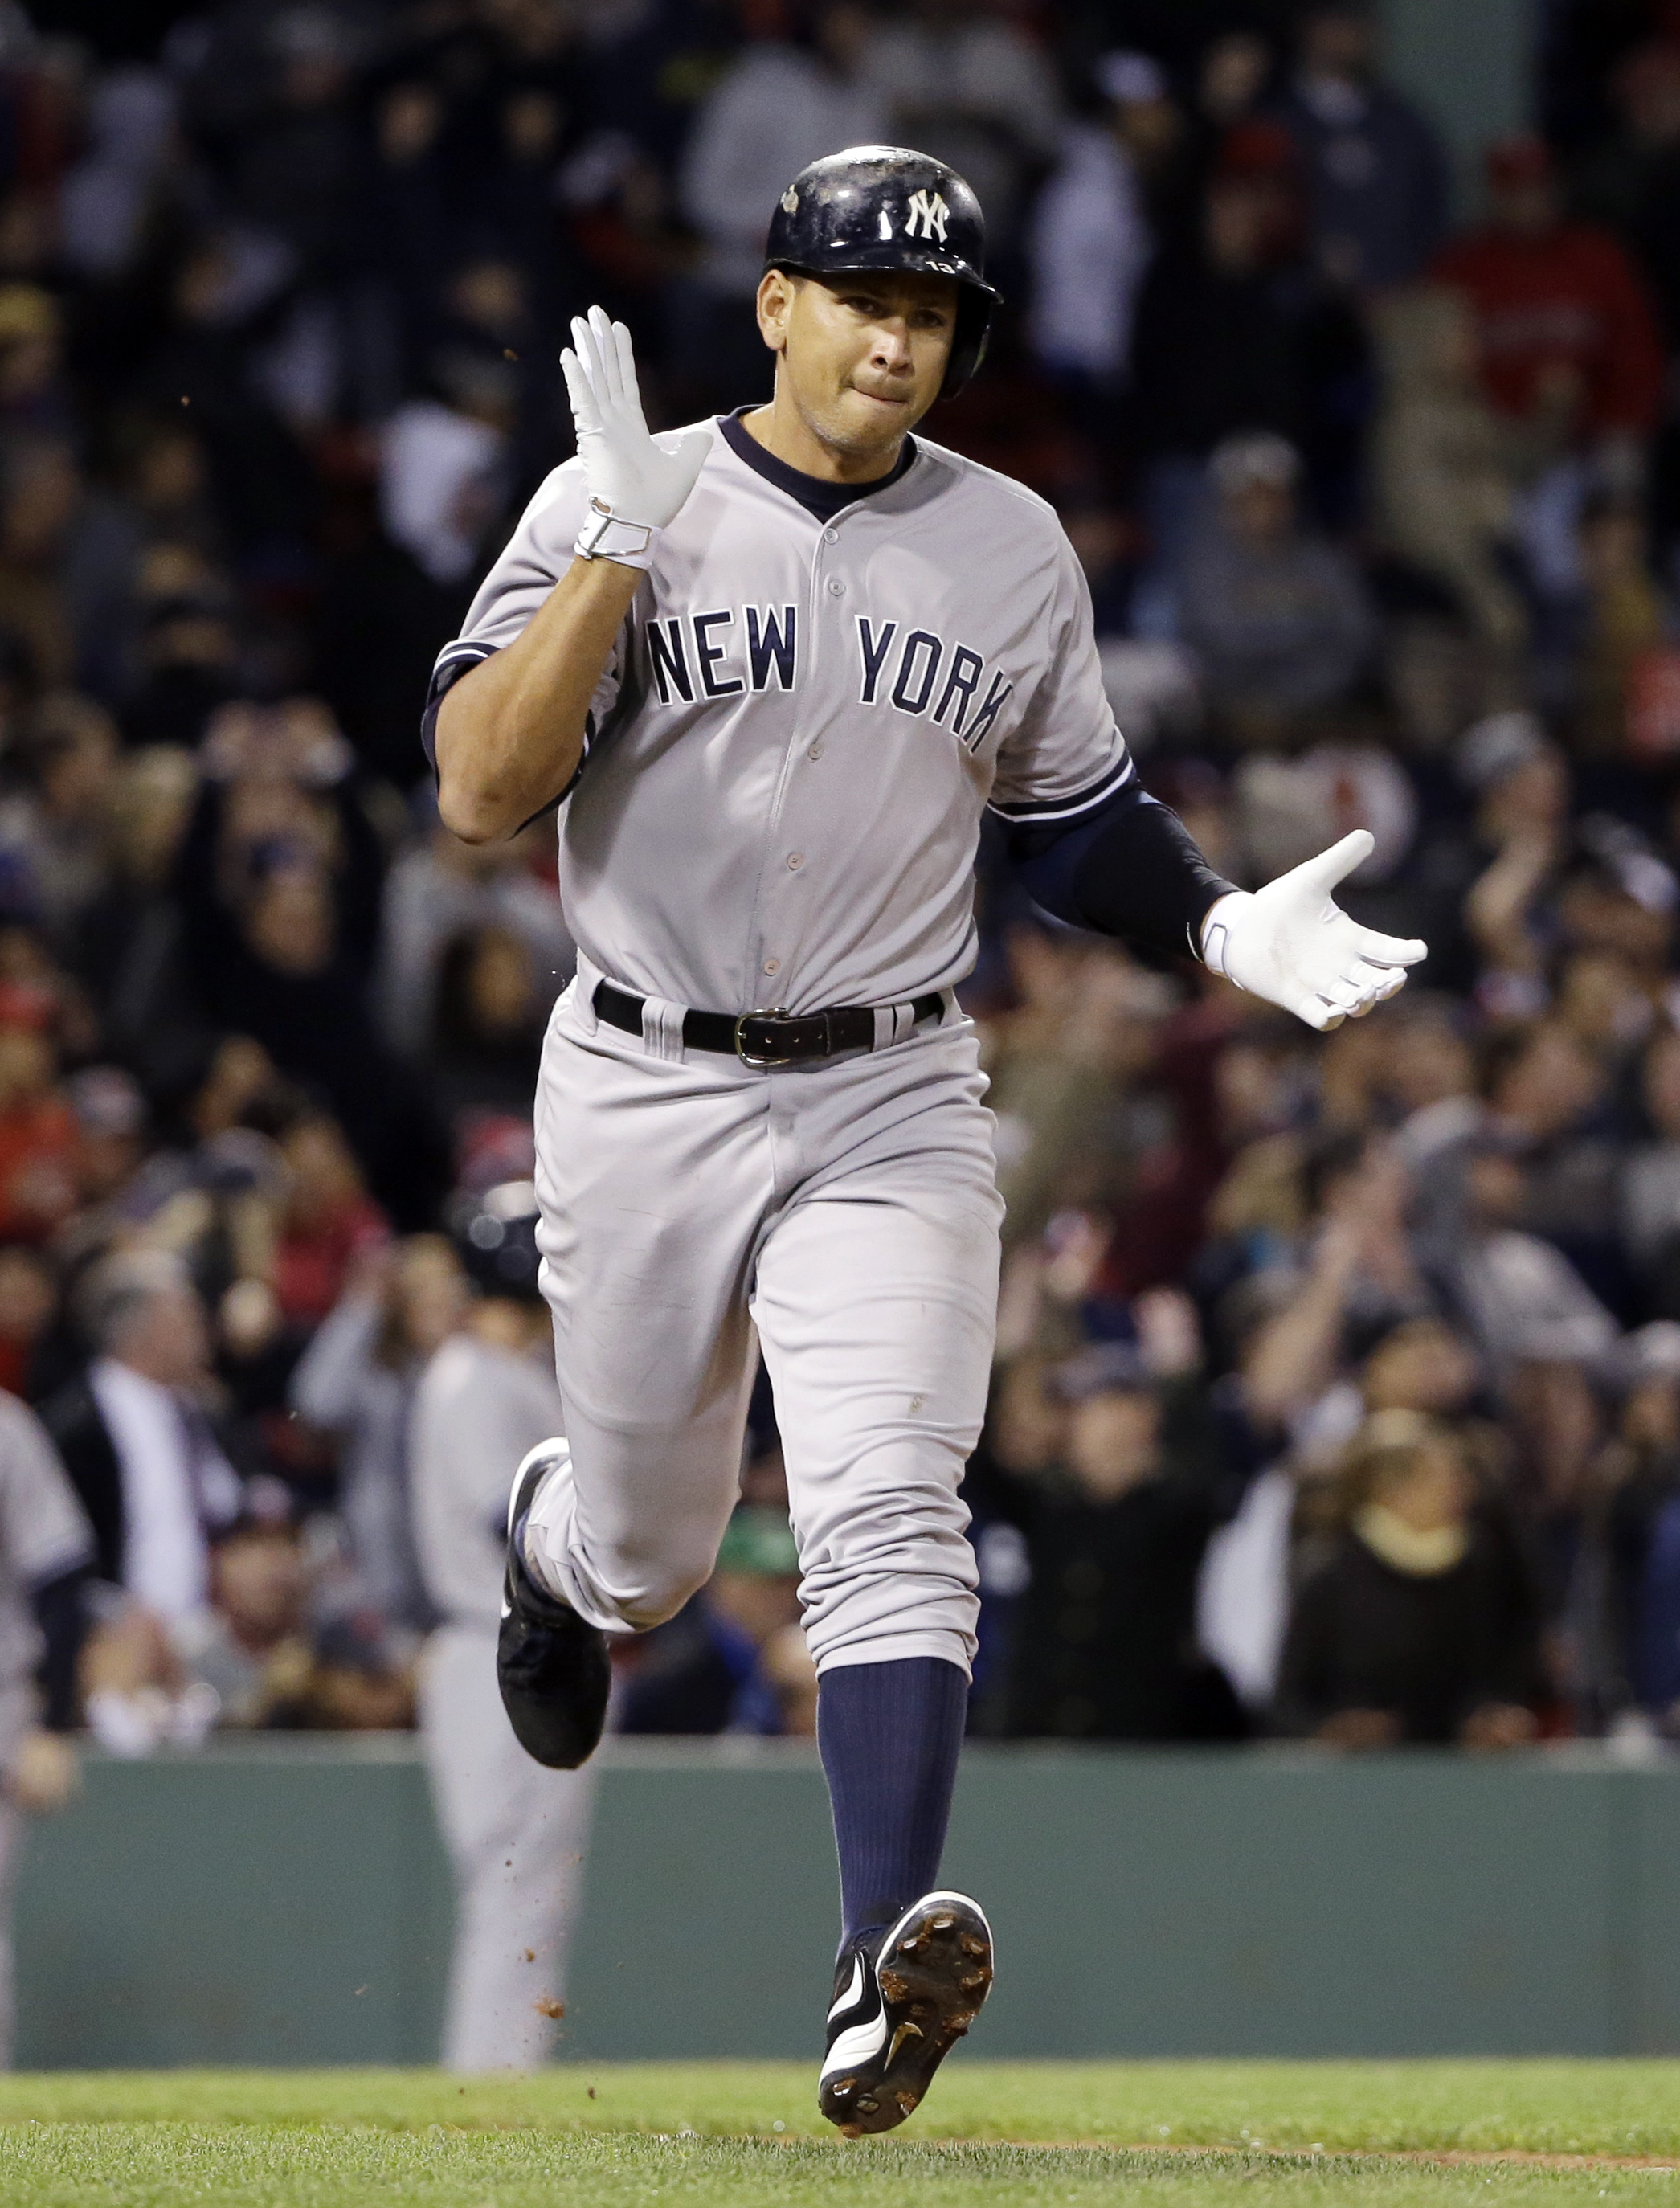 New York Yankees pinch hitter Alex Rodriguez runs to first after hitting a solo homer in the eighth inning of a baseball game against the Boston Red Sox at Fenway Park in Boston, Friday, May 1, 2015. Rodriguez has now tied slugger Willie Mays with 660 car